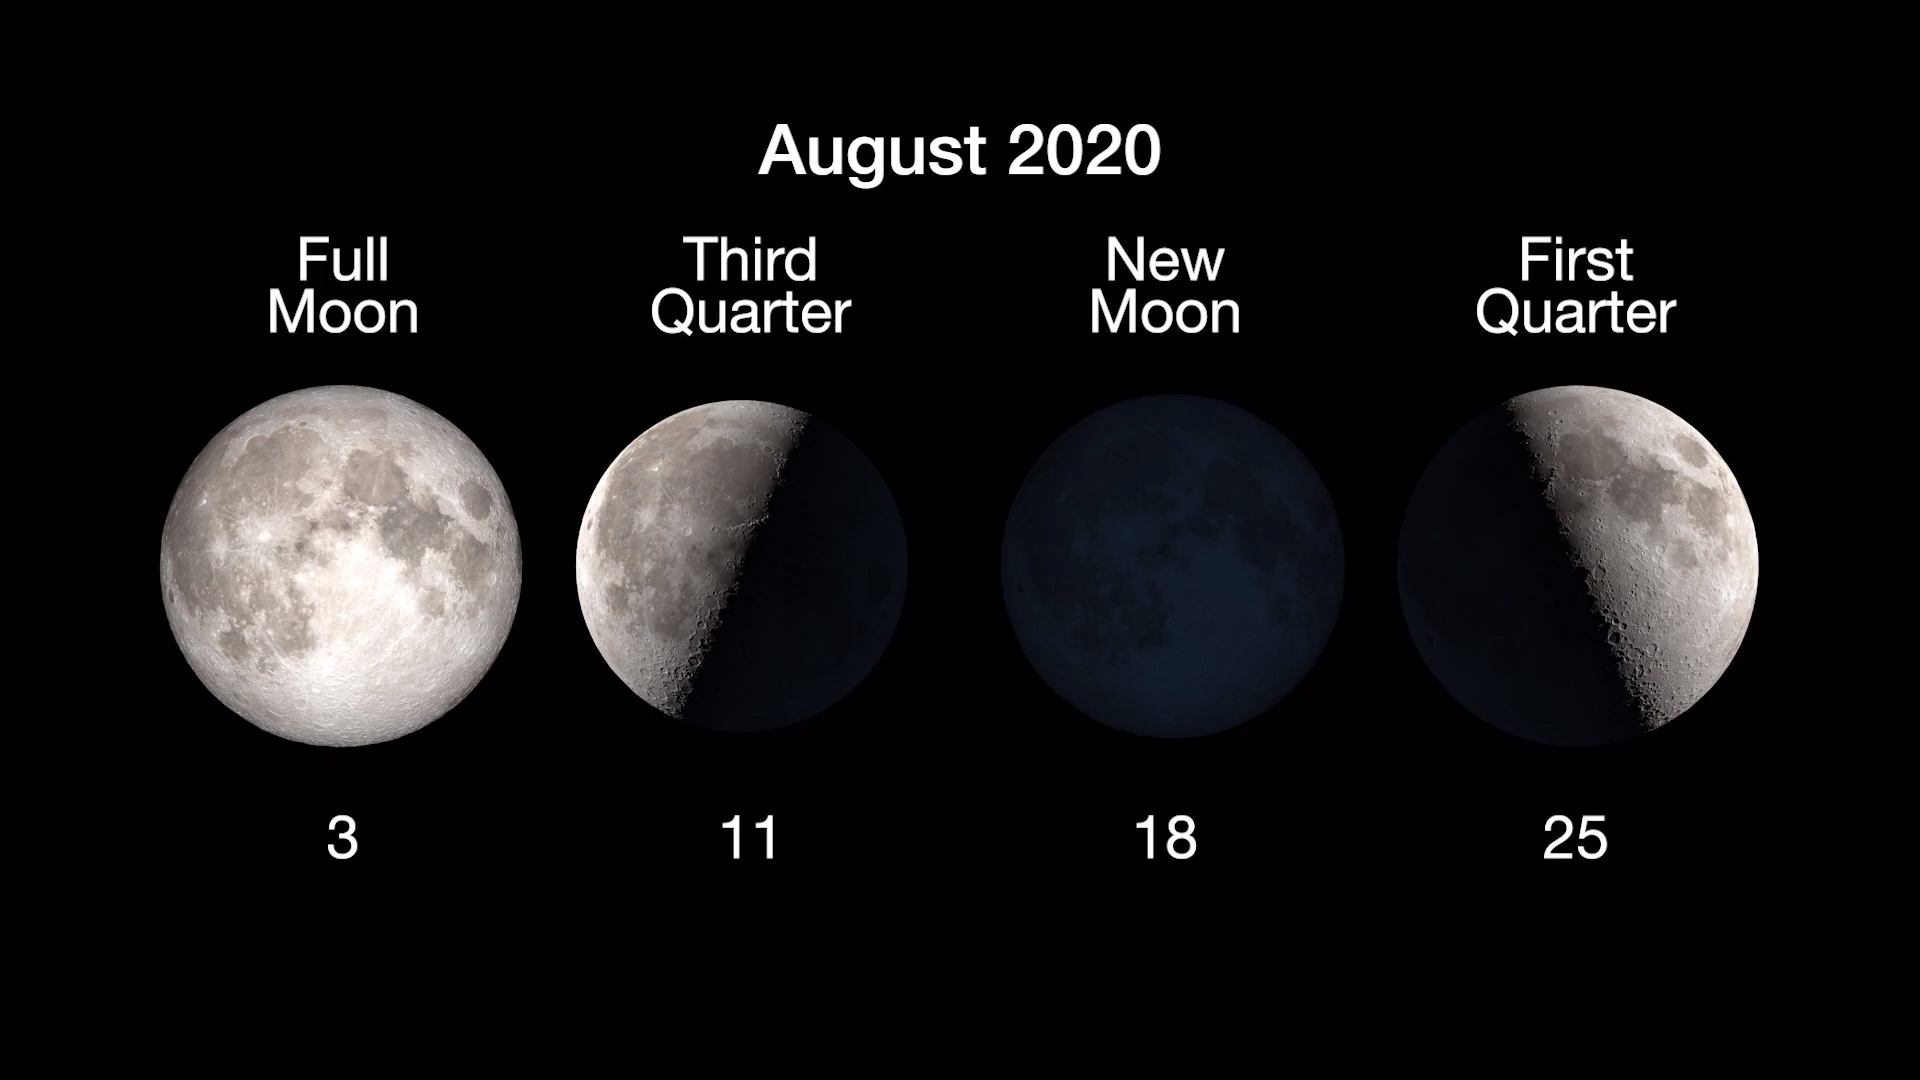 Graphic showing dates for the different phases of the Moon in August 2020.